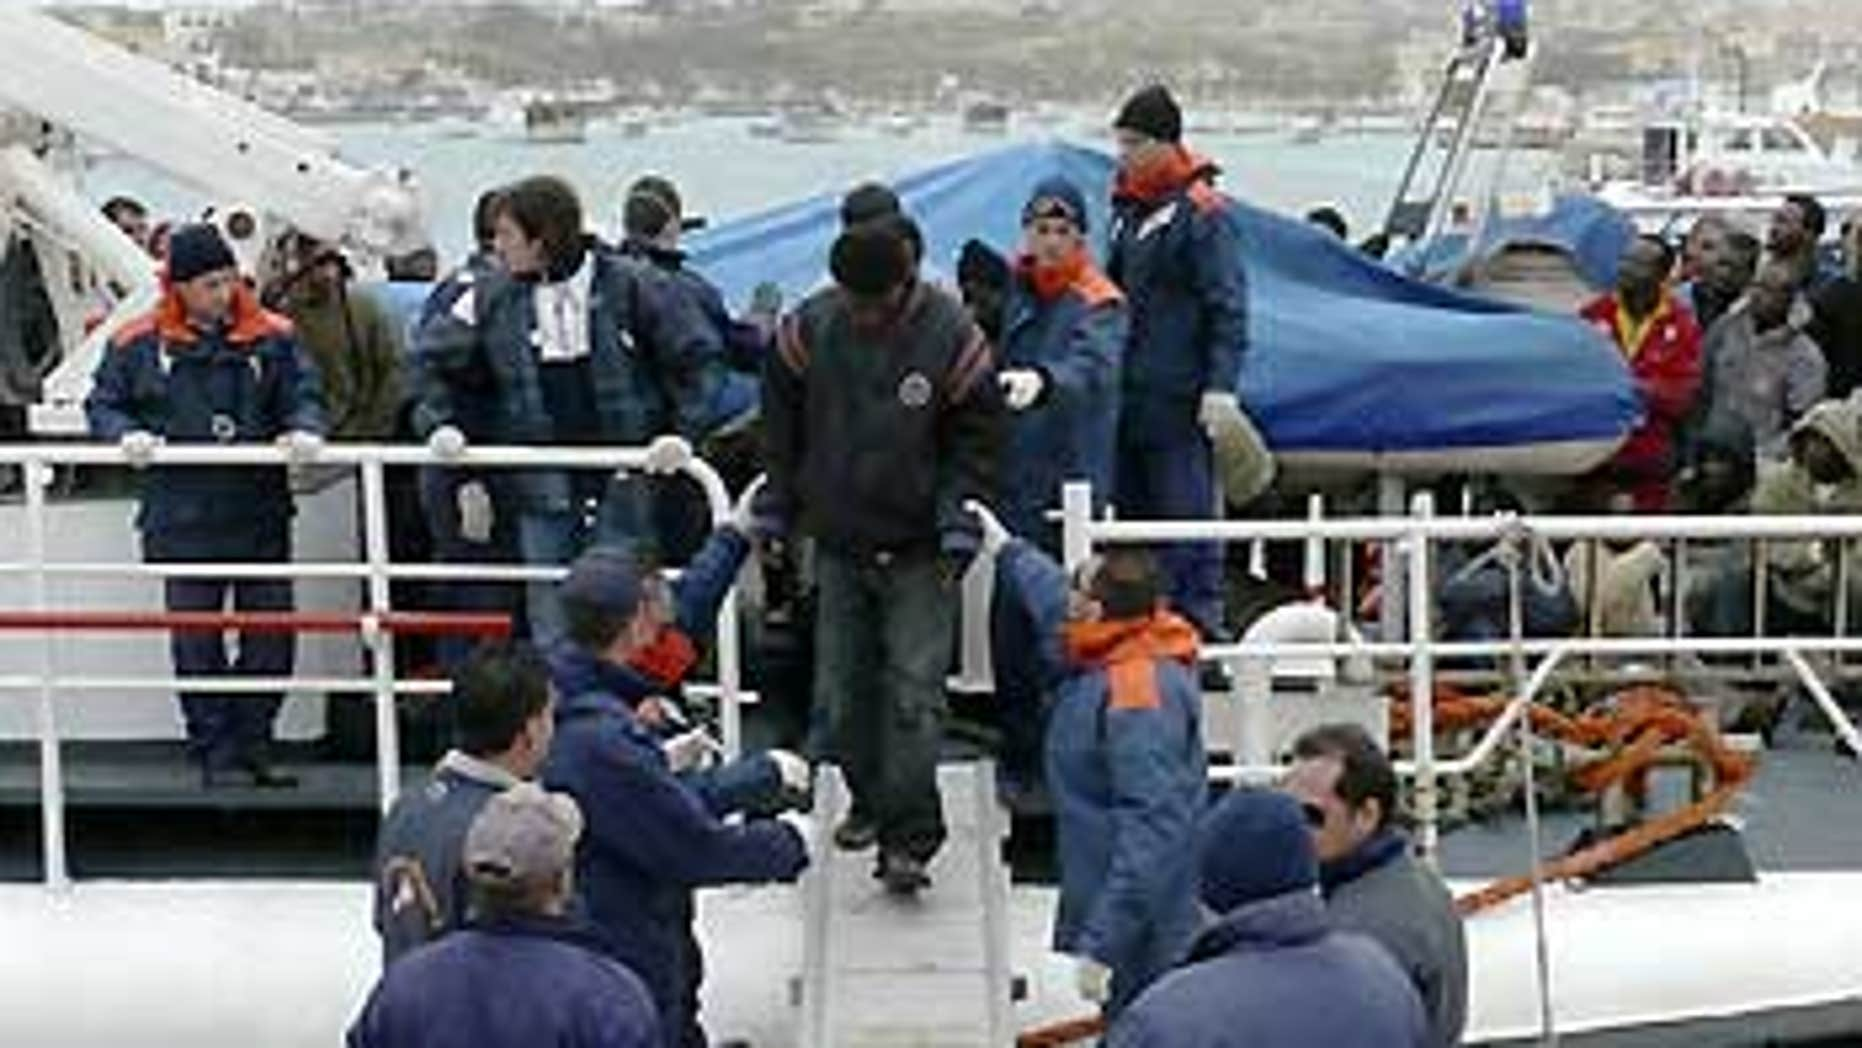 March 29: An Italian Coast Guard boat carrying some would-be immigrants, rescued at sea, reaches the port of the tiny Italian island of Lampedusa.